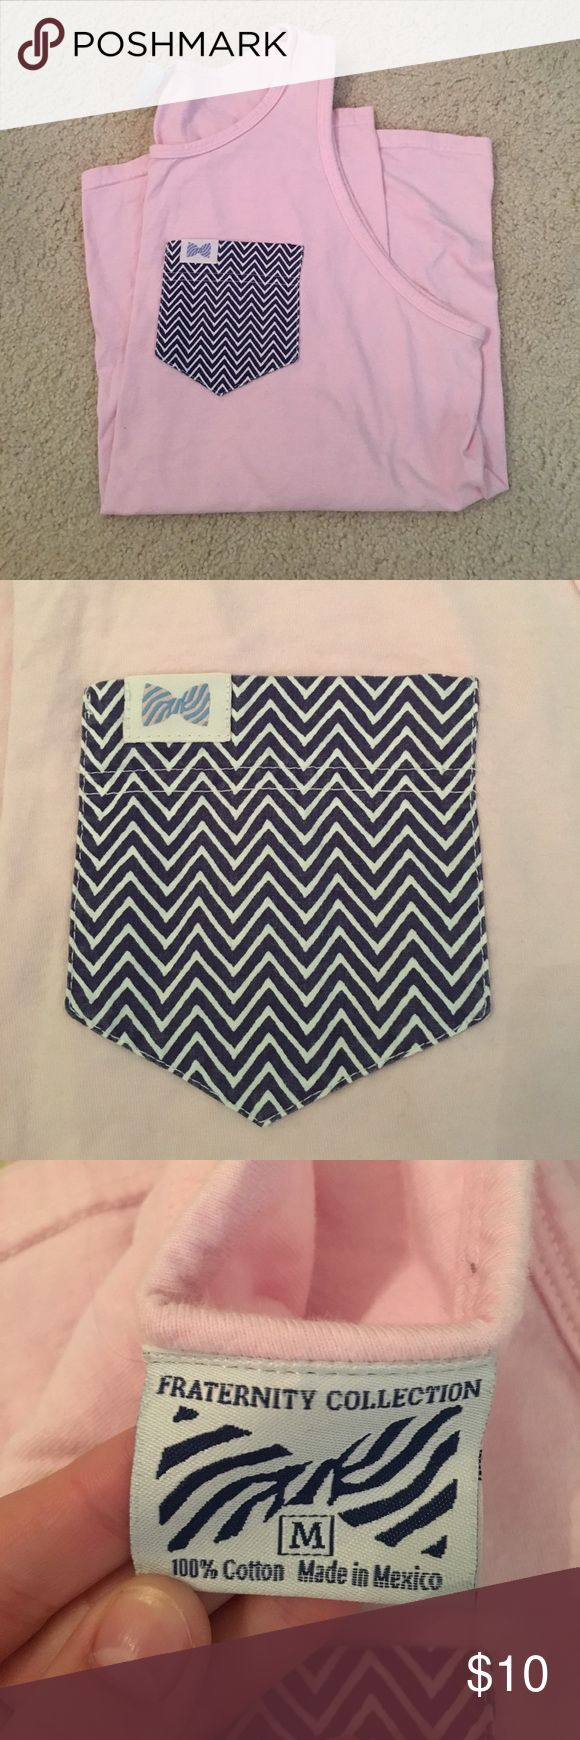 Fraternity collection pink tank It's pink with a Navy patterned pocket. Size medium (unisex) size medium fraternity collection Shirts Tank Tops